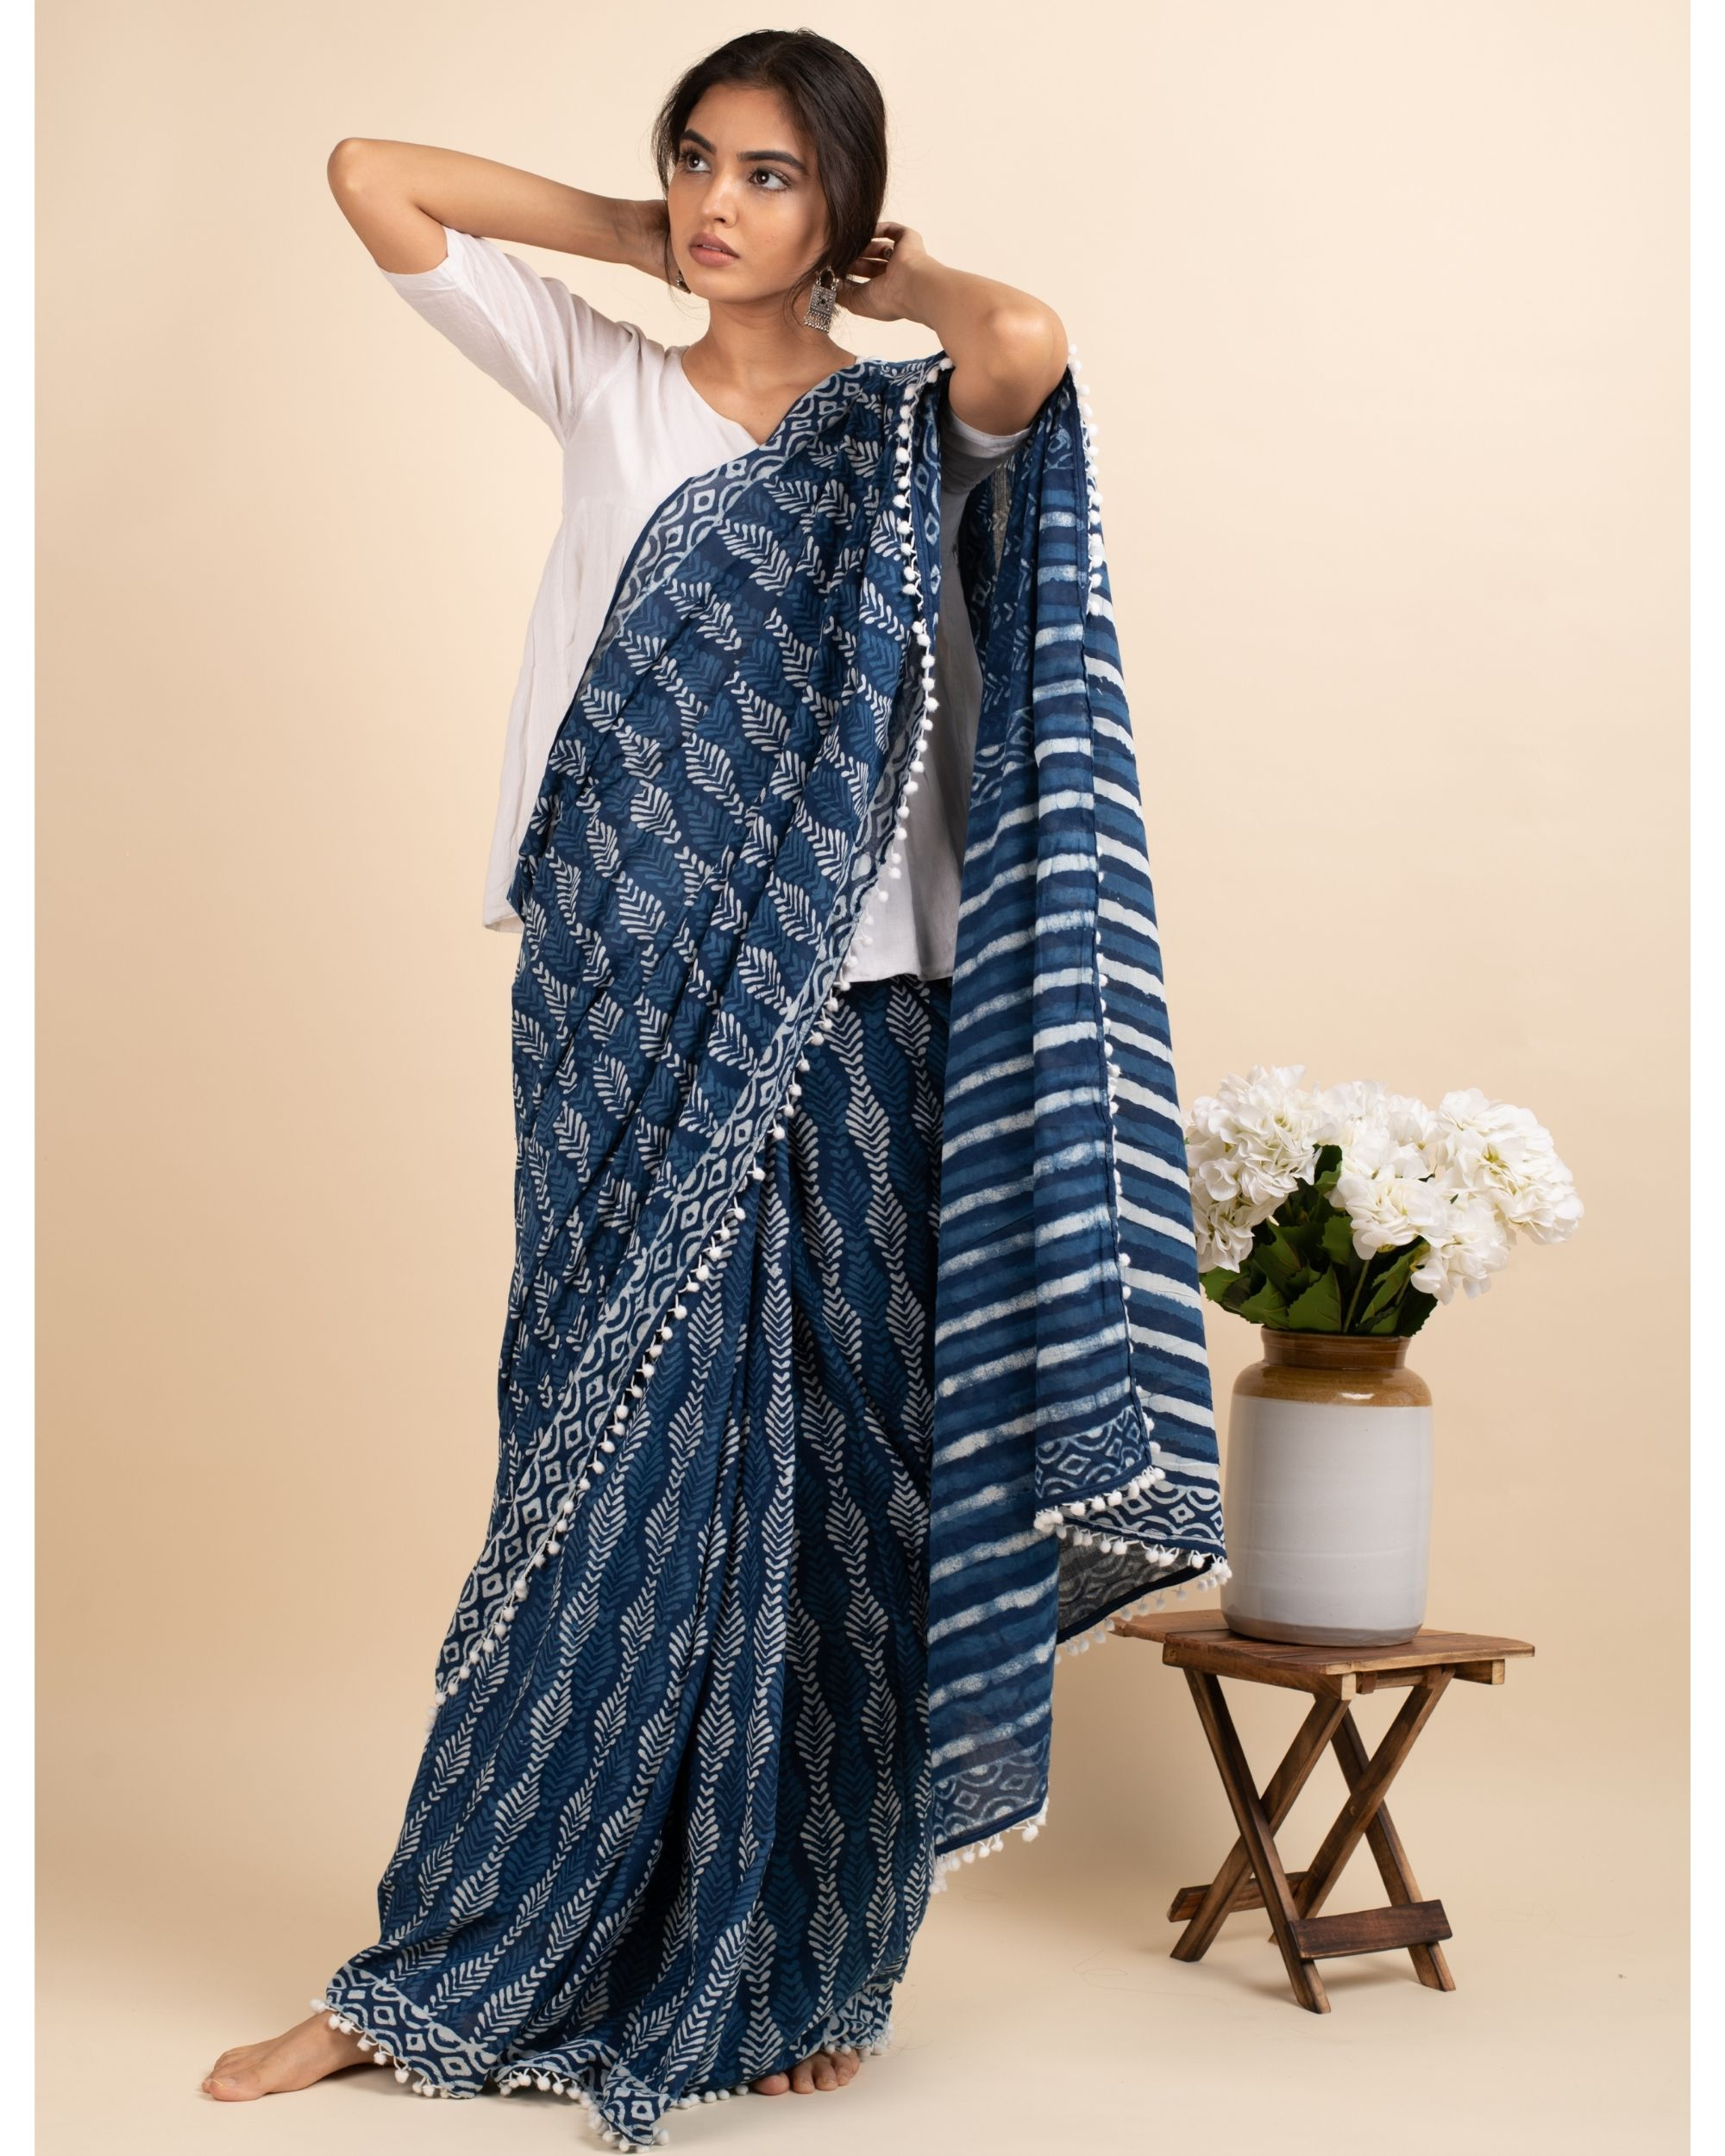 Indigo skies sari with attached blouse piece